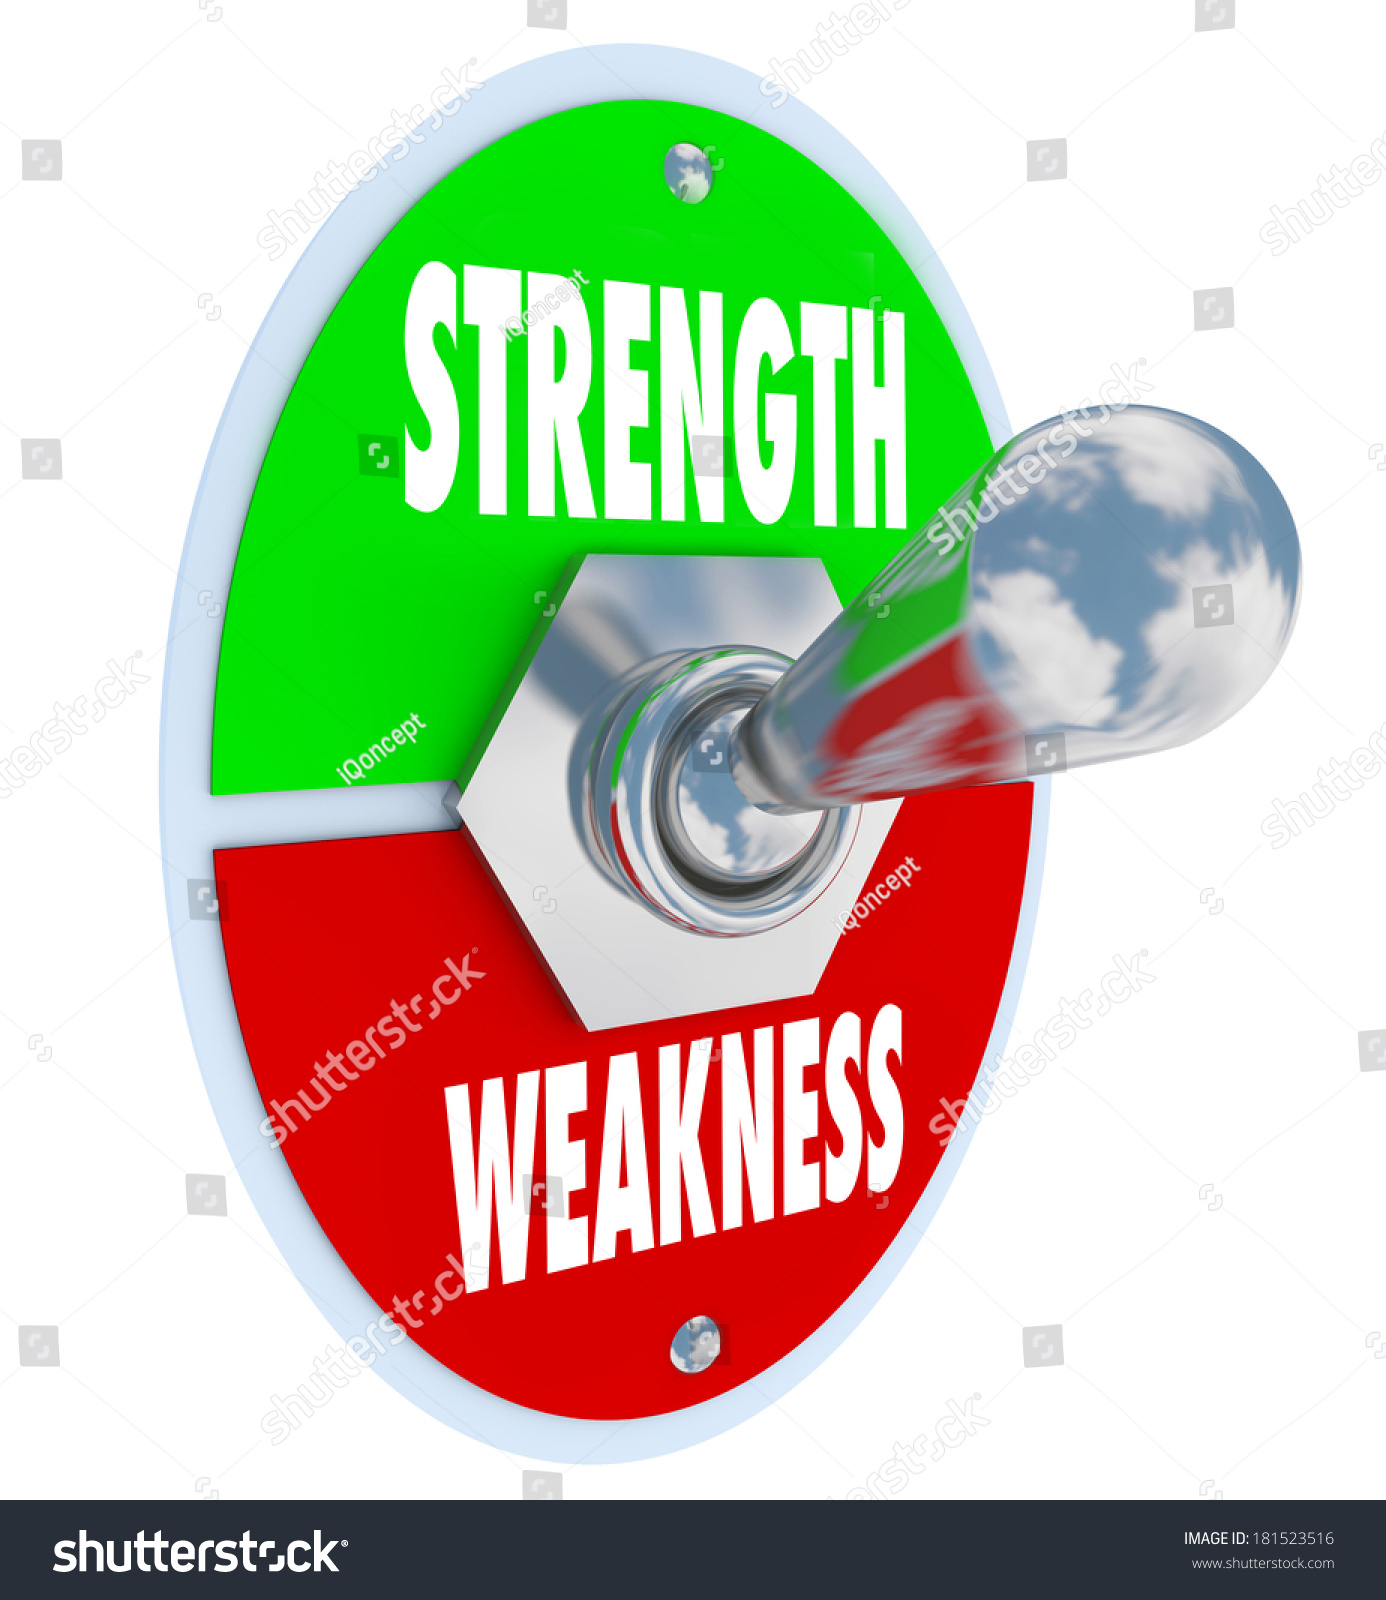 strength vs weakness words on a toggle switch button or lever to save to a lightbox